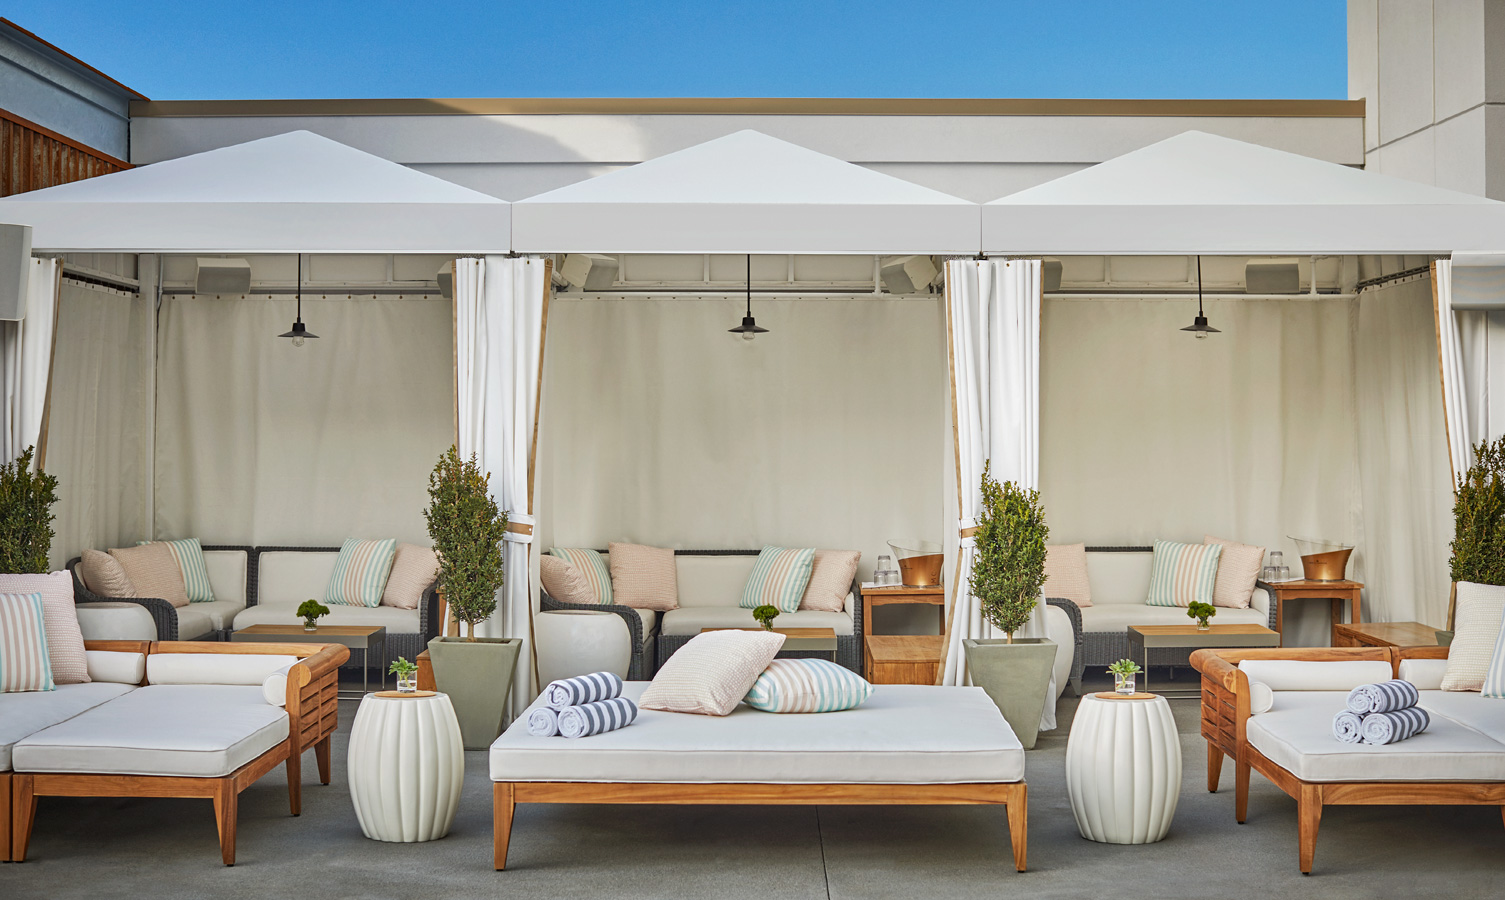 Pool House San Diego - Rooftop Bar Poolside Cabana